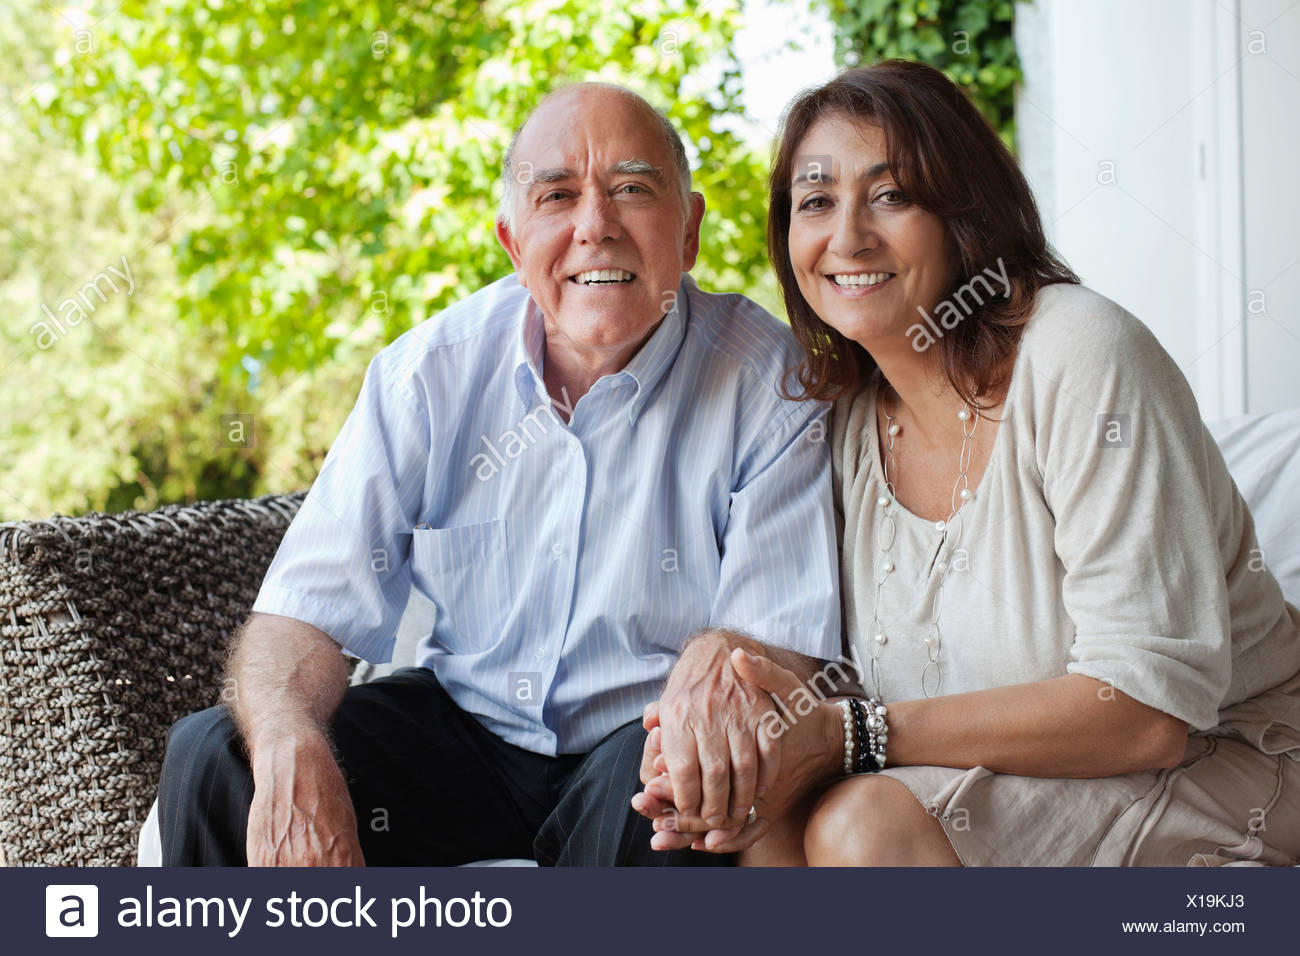 Couple holding hands on patio Photo Stock